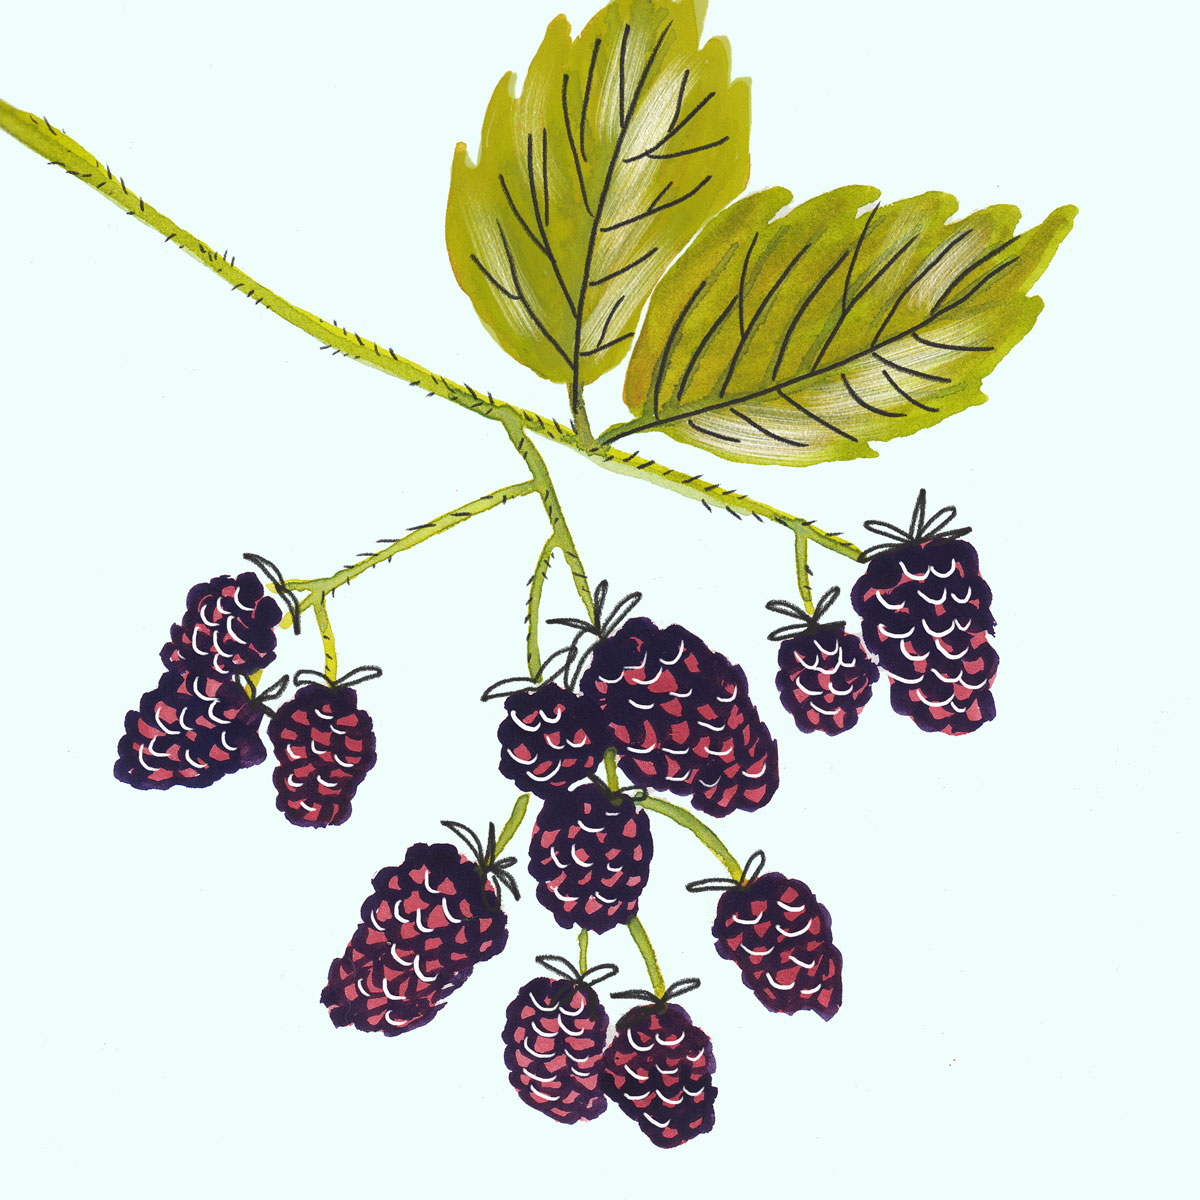 032-Blackberries.jpg